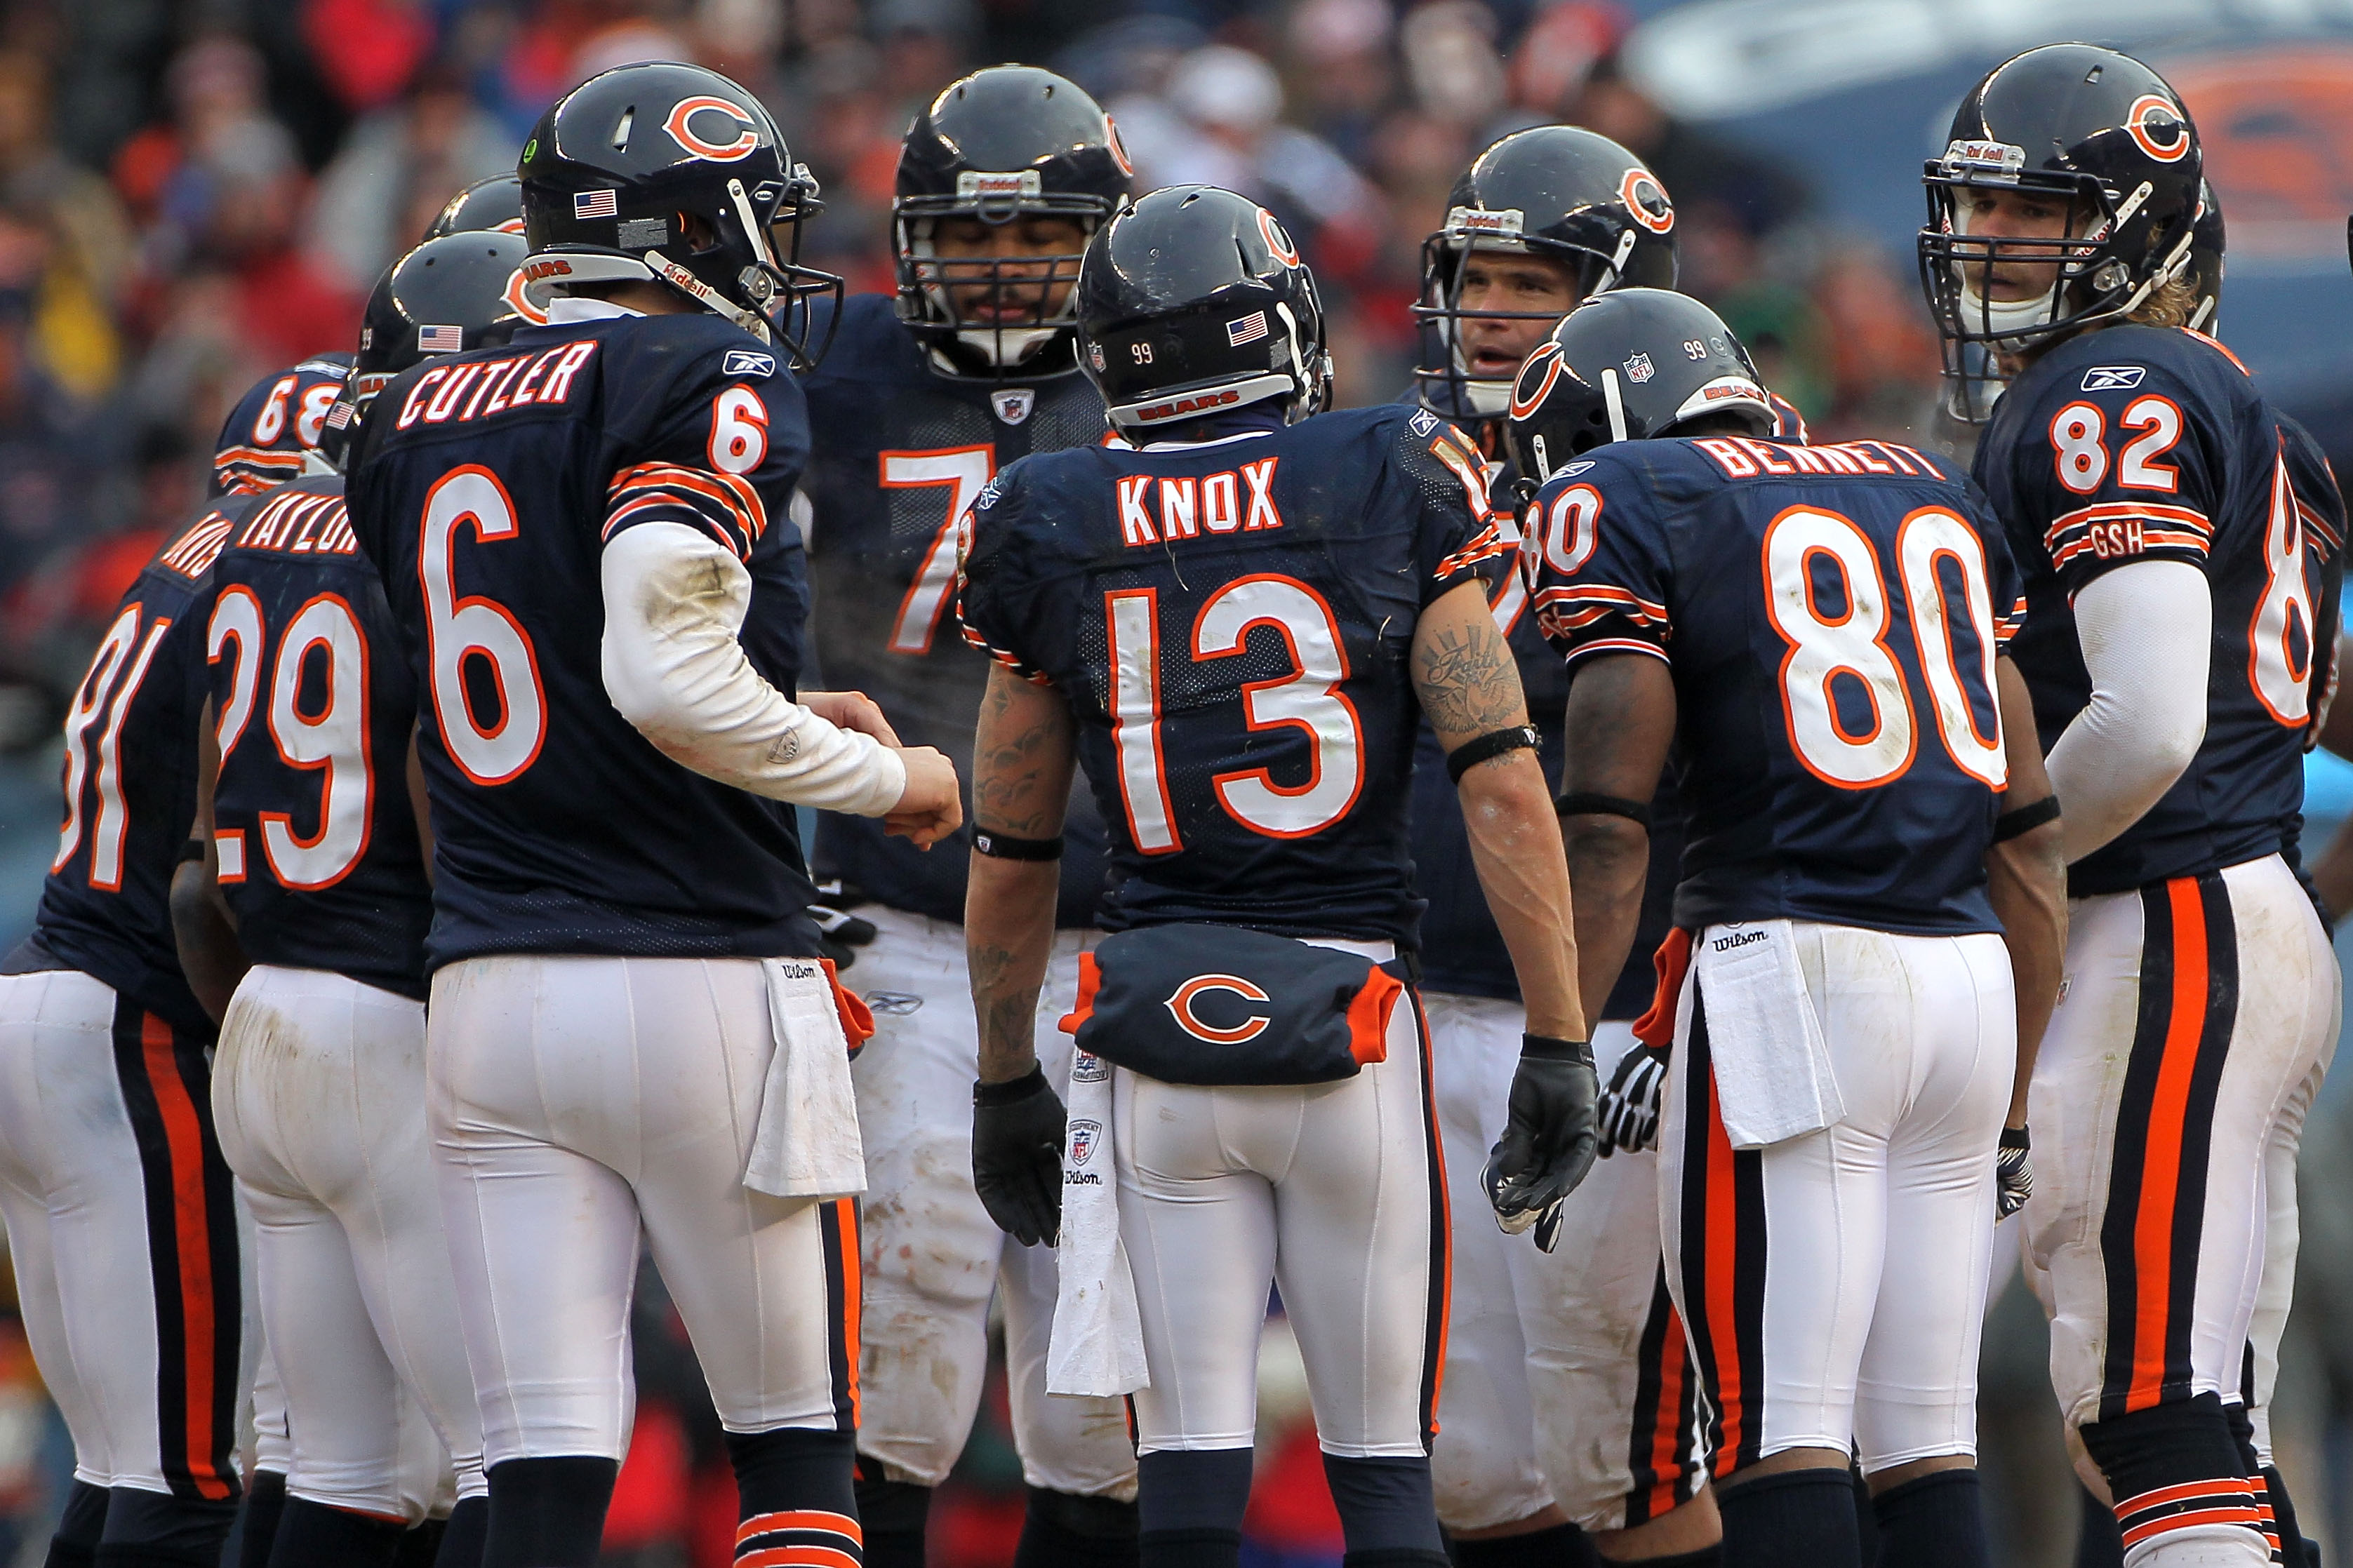 CHICAGO, IL - JANUARY 16:  Jay Cutler #6 of the Chicago Bears huddles with his team against the Seattle Seahawks in the 2011 NFC divisional playoff game at Soldier Field on January 16, 2011 in Chicago, Illinois.  (Photo by Doug Pensinger/Getty Images)